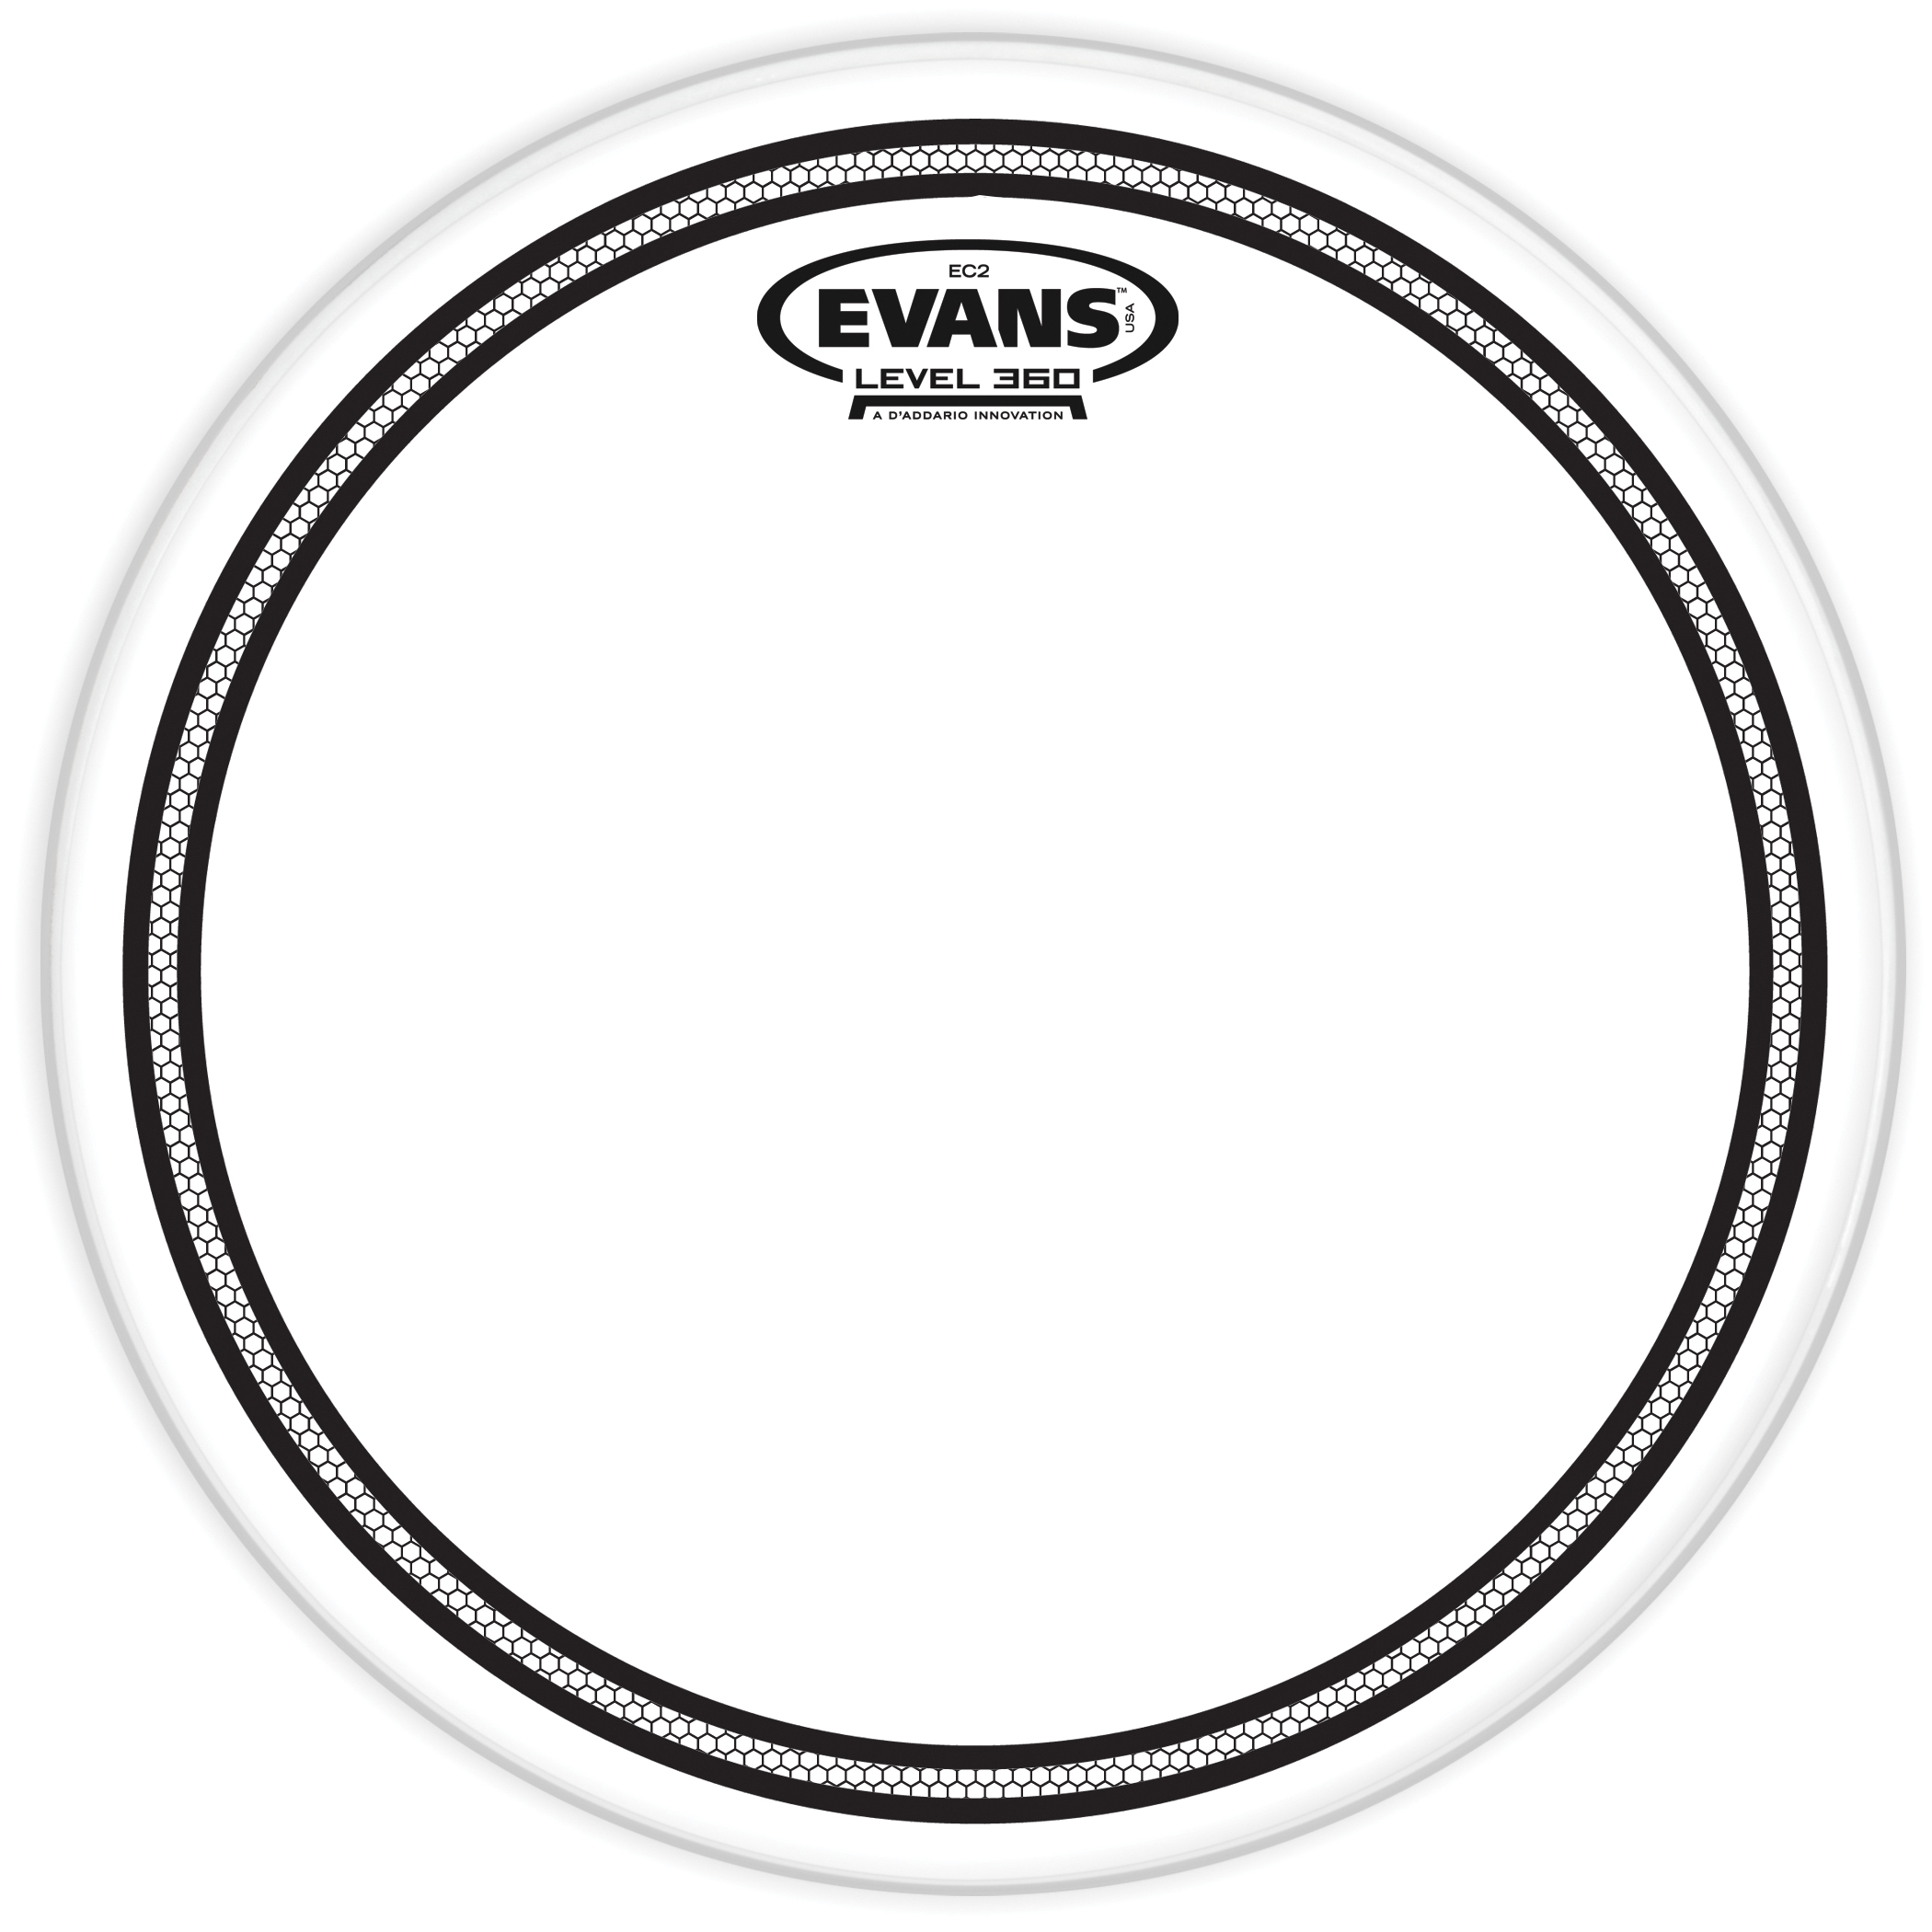 10 EC2 drum head